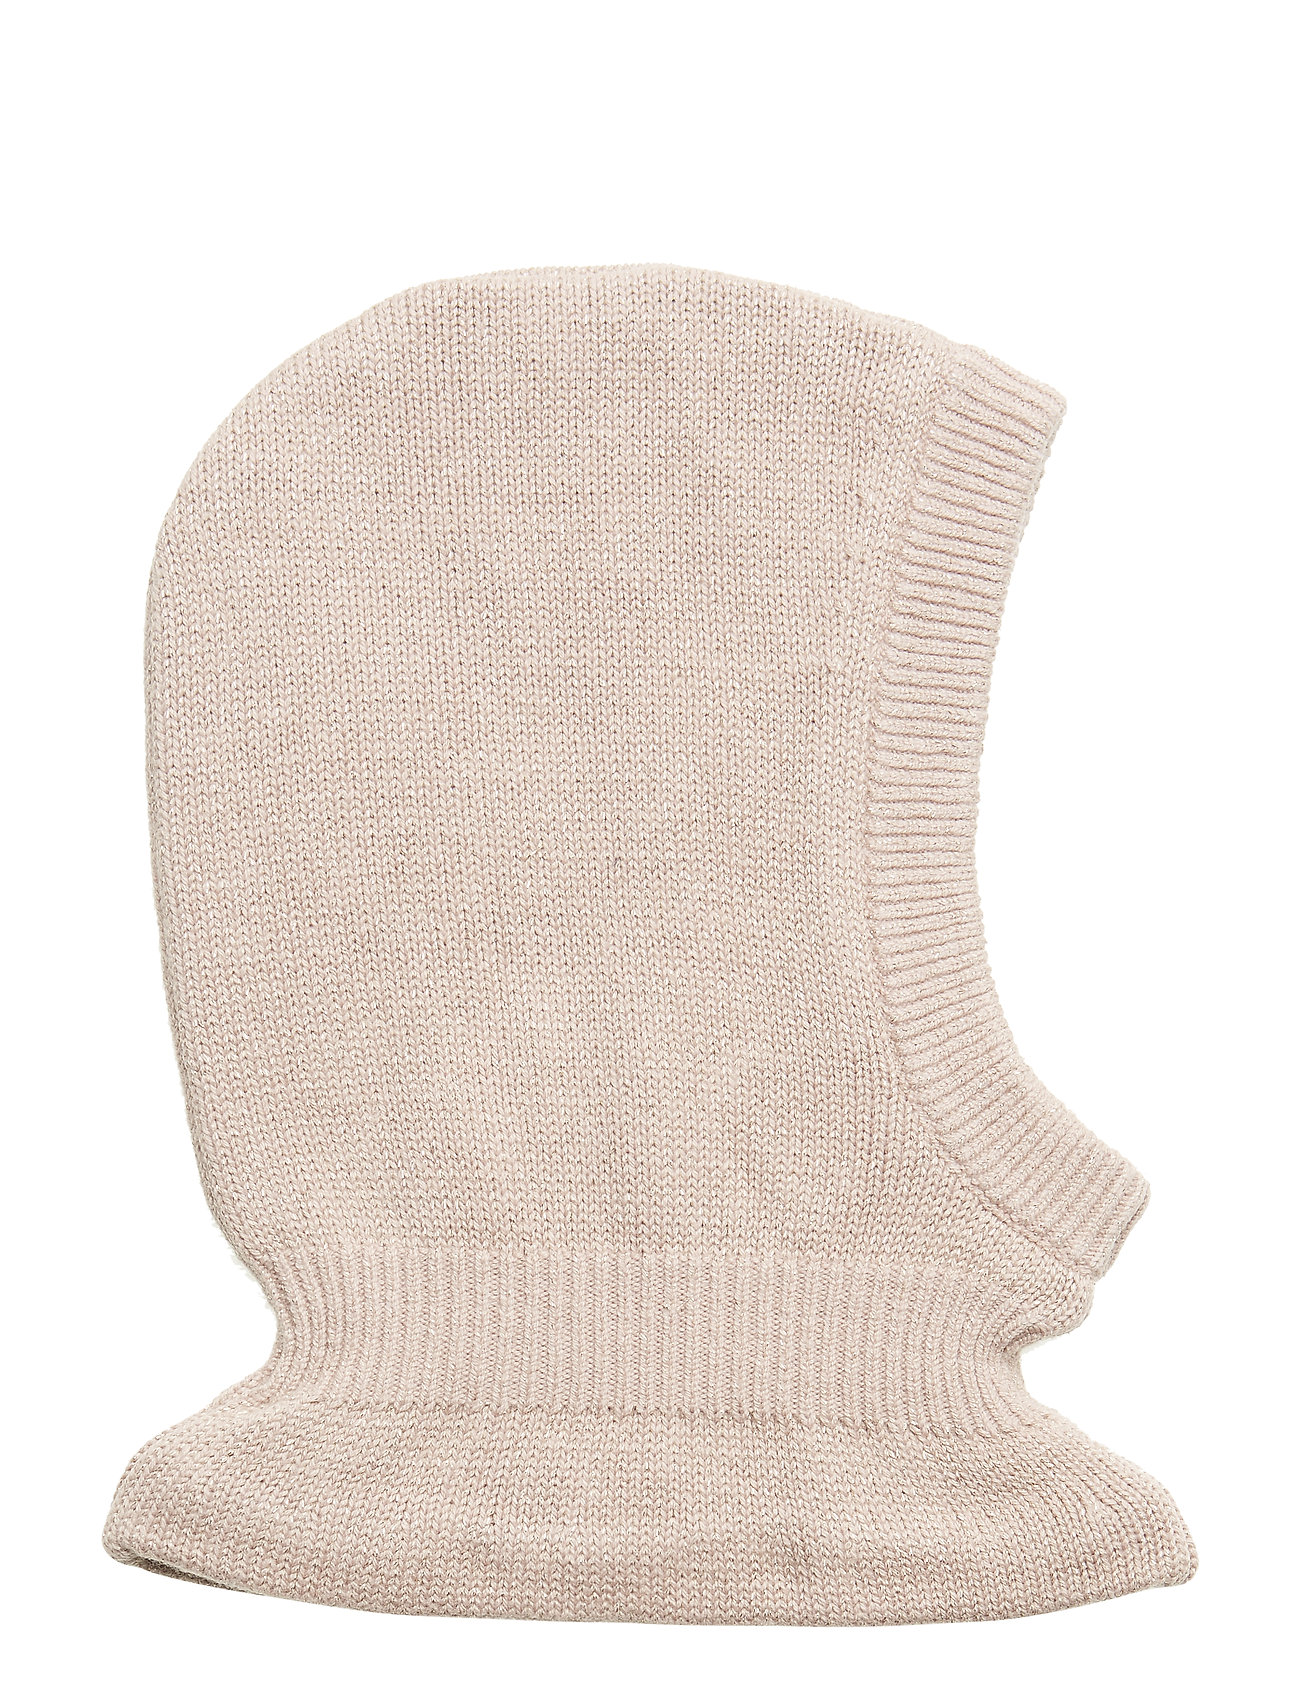 Image of Knitted Balaclava Hat Lyserød WHEAT (3072431869)